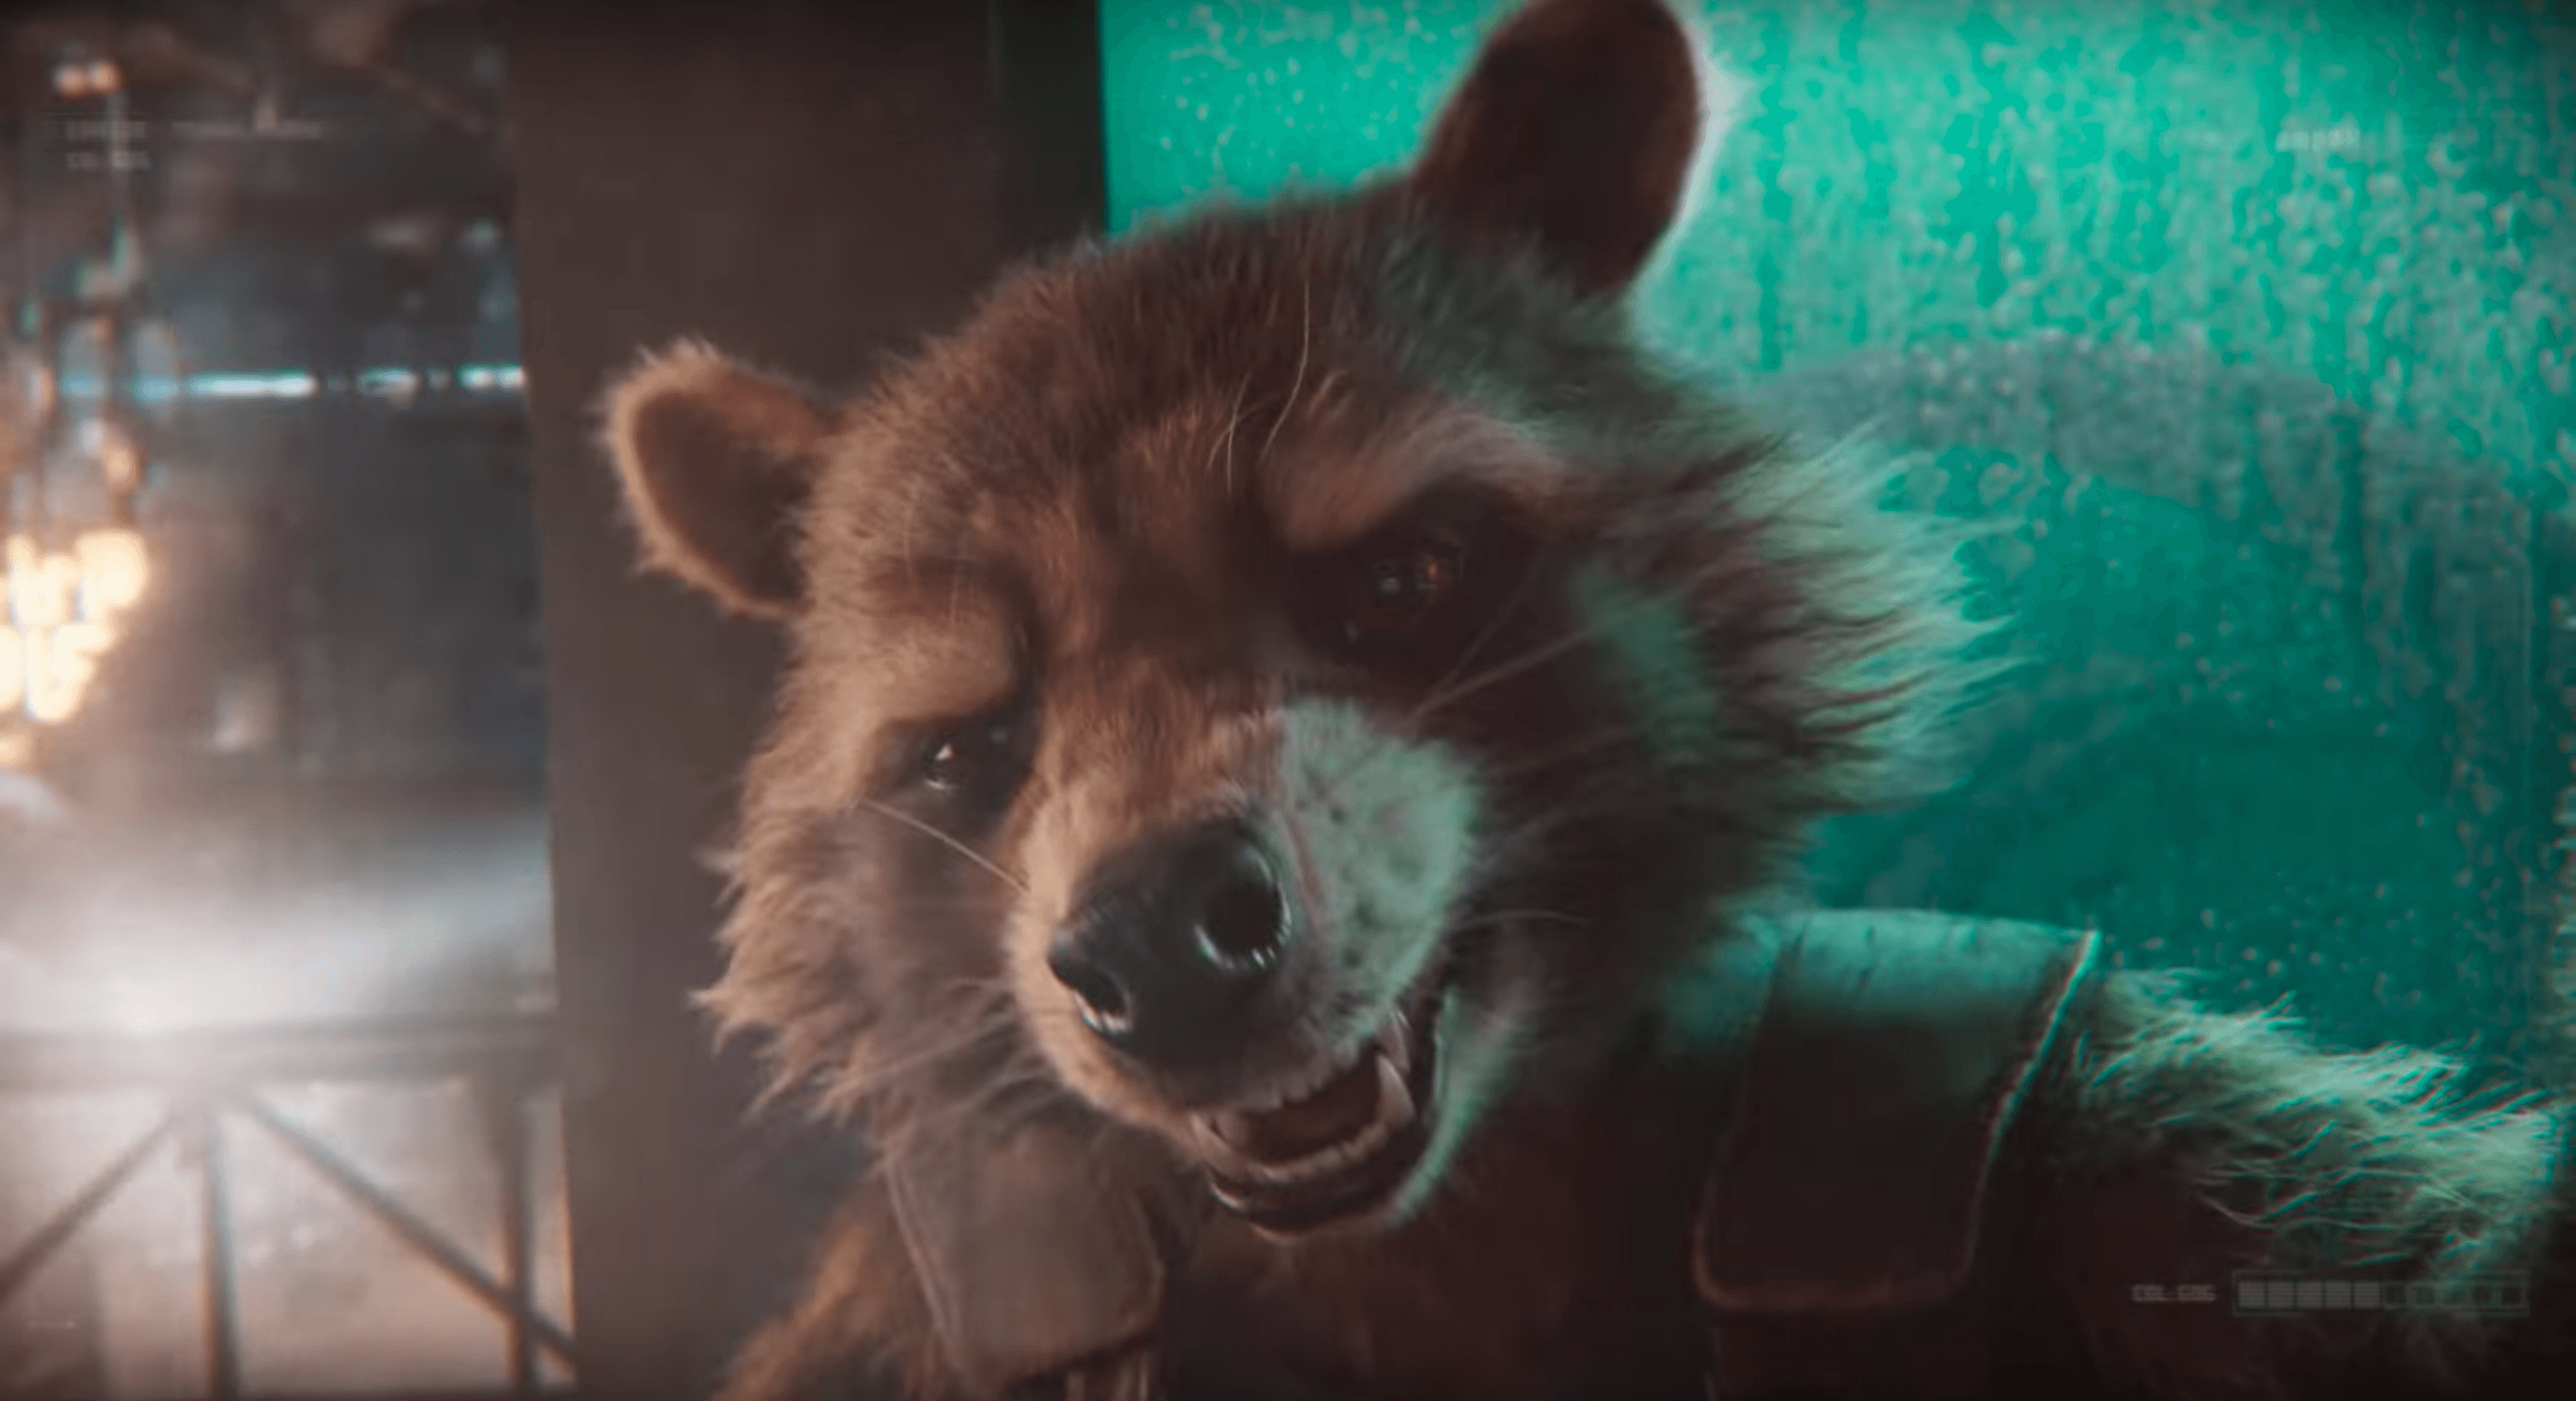 Rocket Raccoon Transmission for Guardians of the Galaxy - Mission: BREAKOUT!